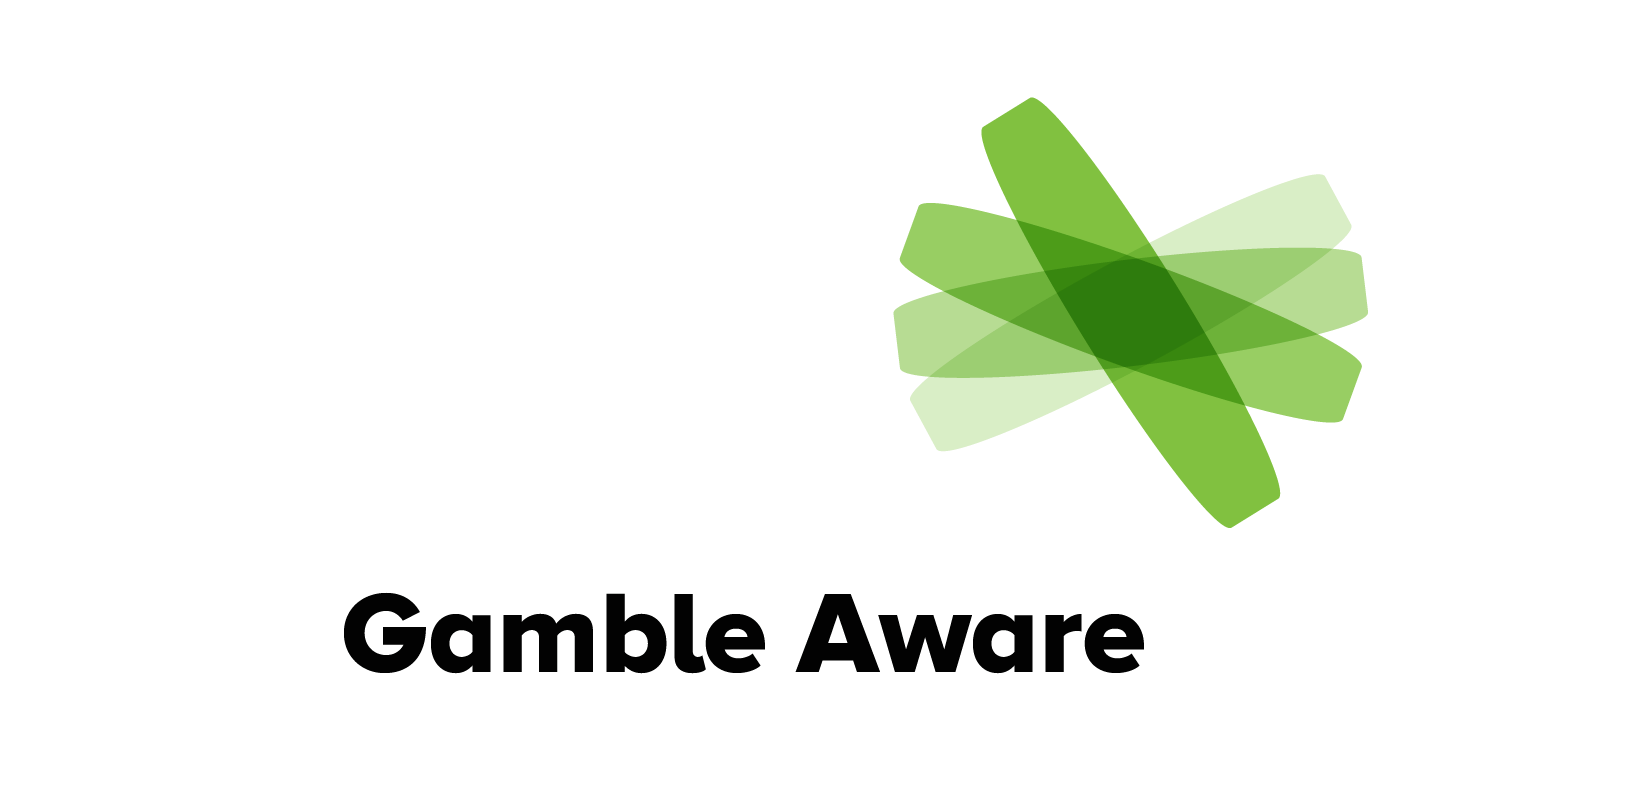 Need For Clearer Messages About Risks Associated With Gambling: GambleAware Report